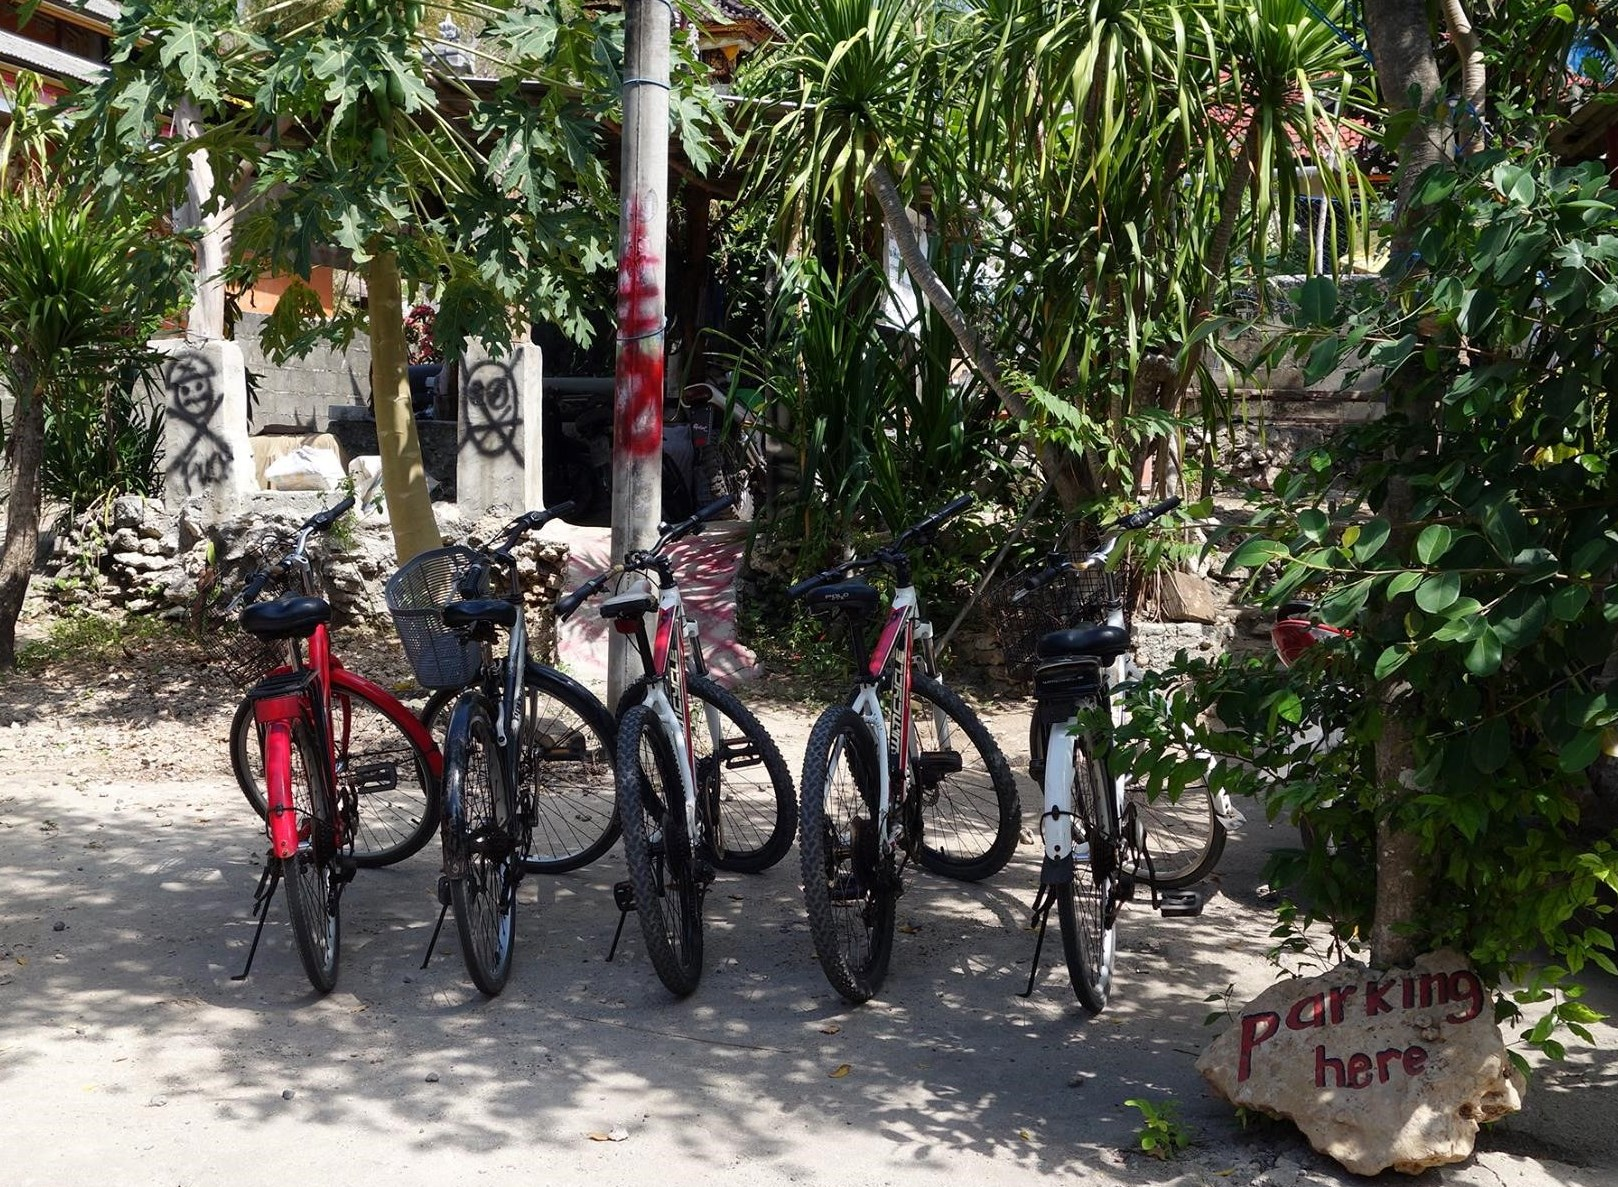 Our bicycle parking lot at the local warung at Nusa Ceningan.